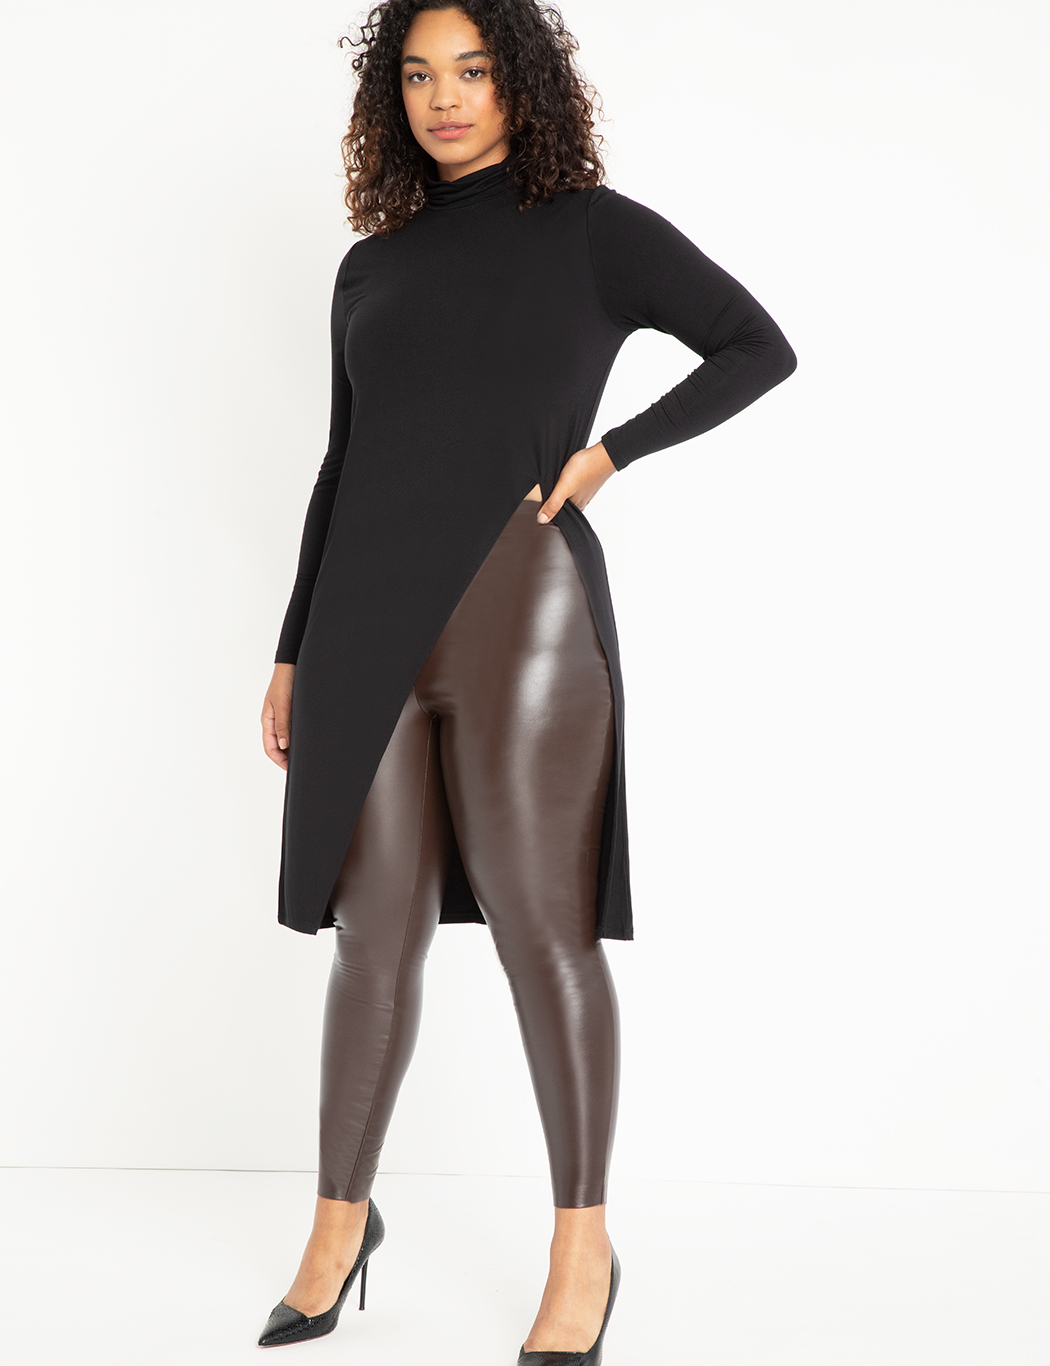 Long Sleeve Top with Dramatic Slit